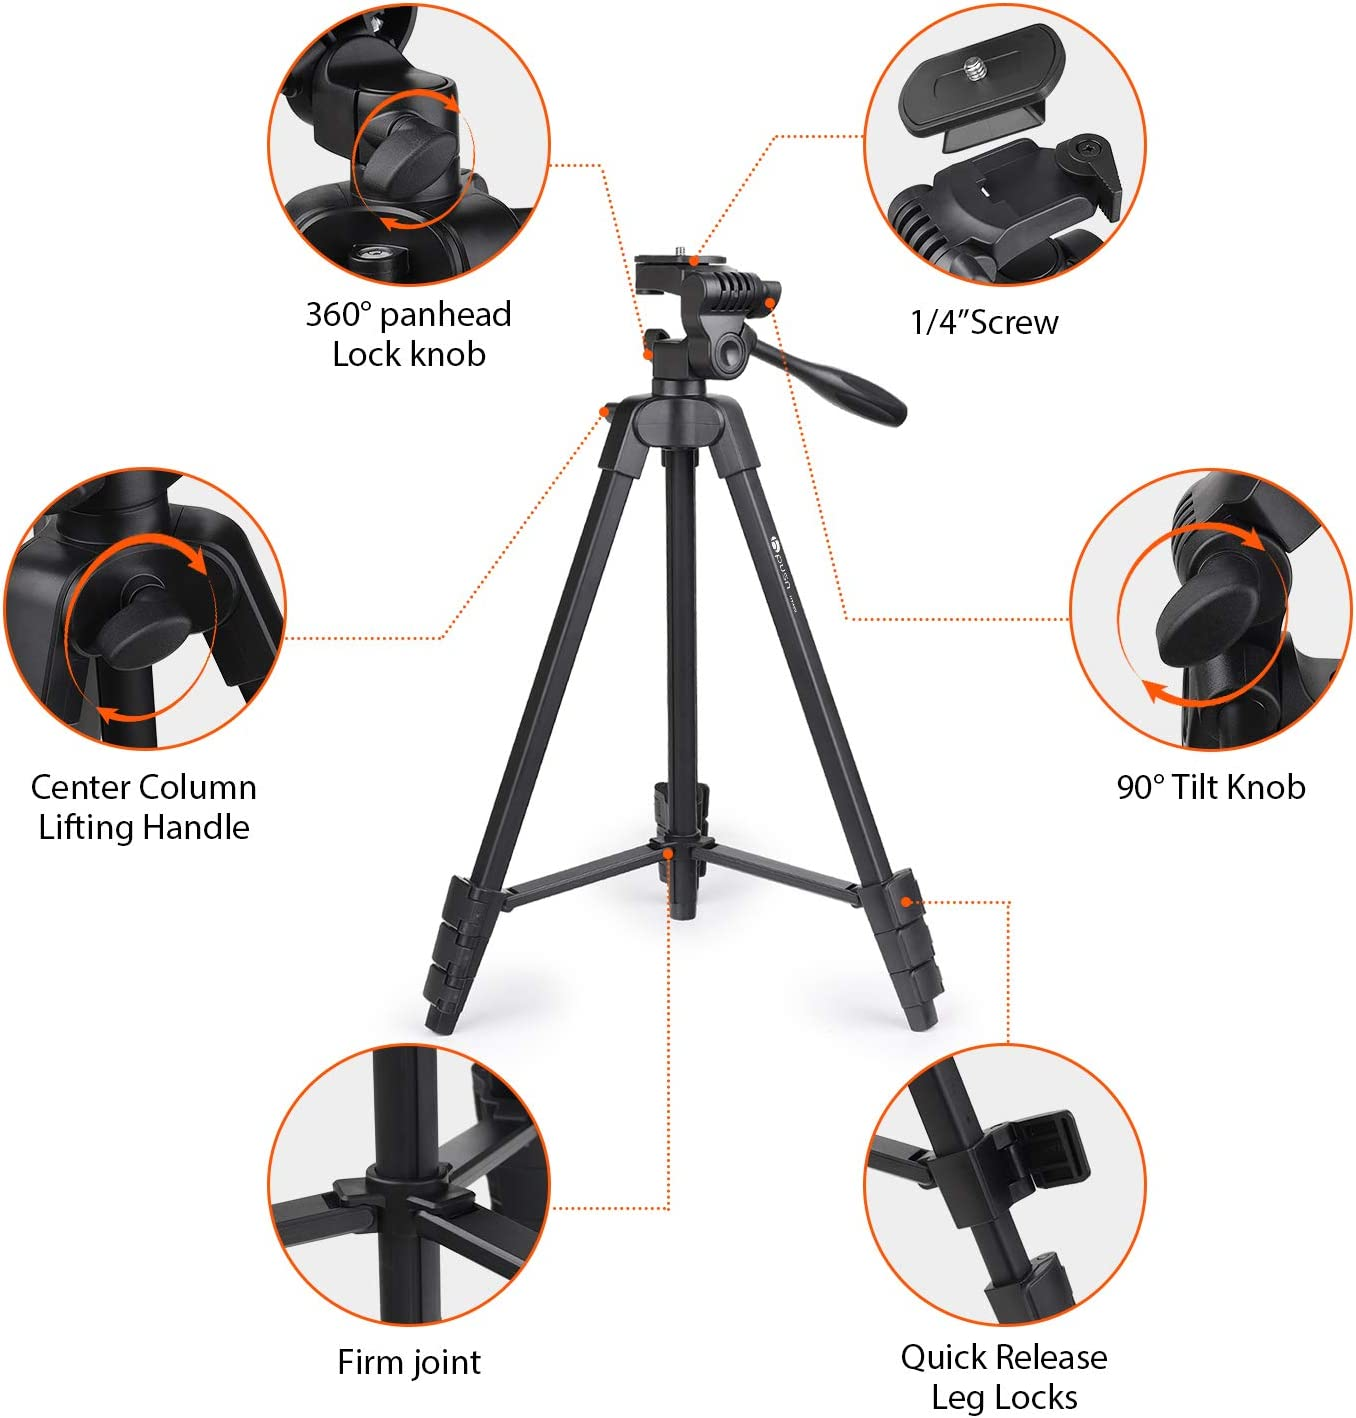 HPUSN Phone Tripod 55 inch,Travel Tripod for iPhone//Camera//DSLR//GoPro with Phone Hoder,Remote Control,Carry Bag,for Photography,Video,Vlogging,Aluminum Lightweight Tripod Weight 1.3 Lb